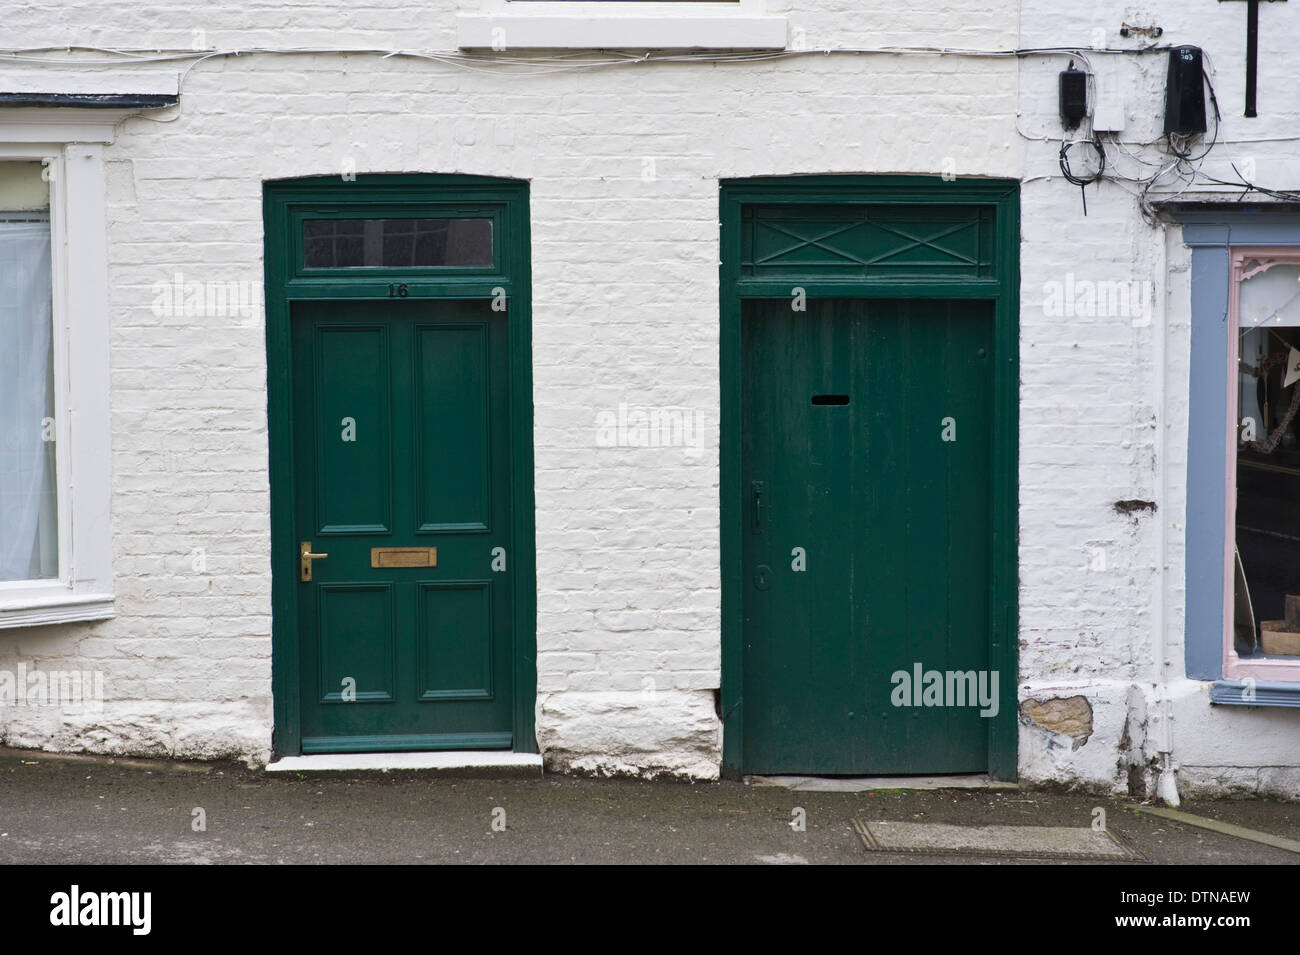 Number 16 green wooden front doors of house in malton for Number 16 house